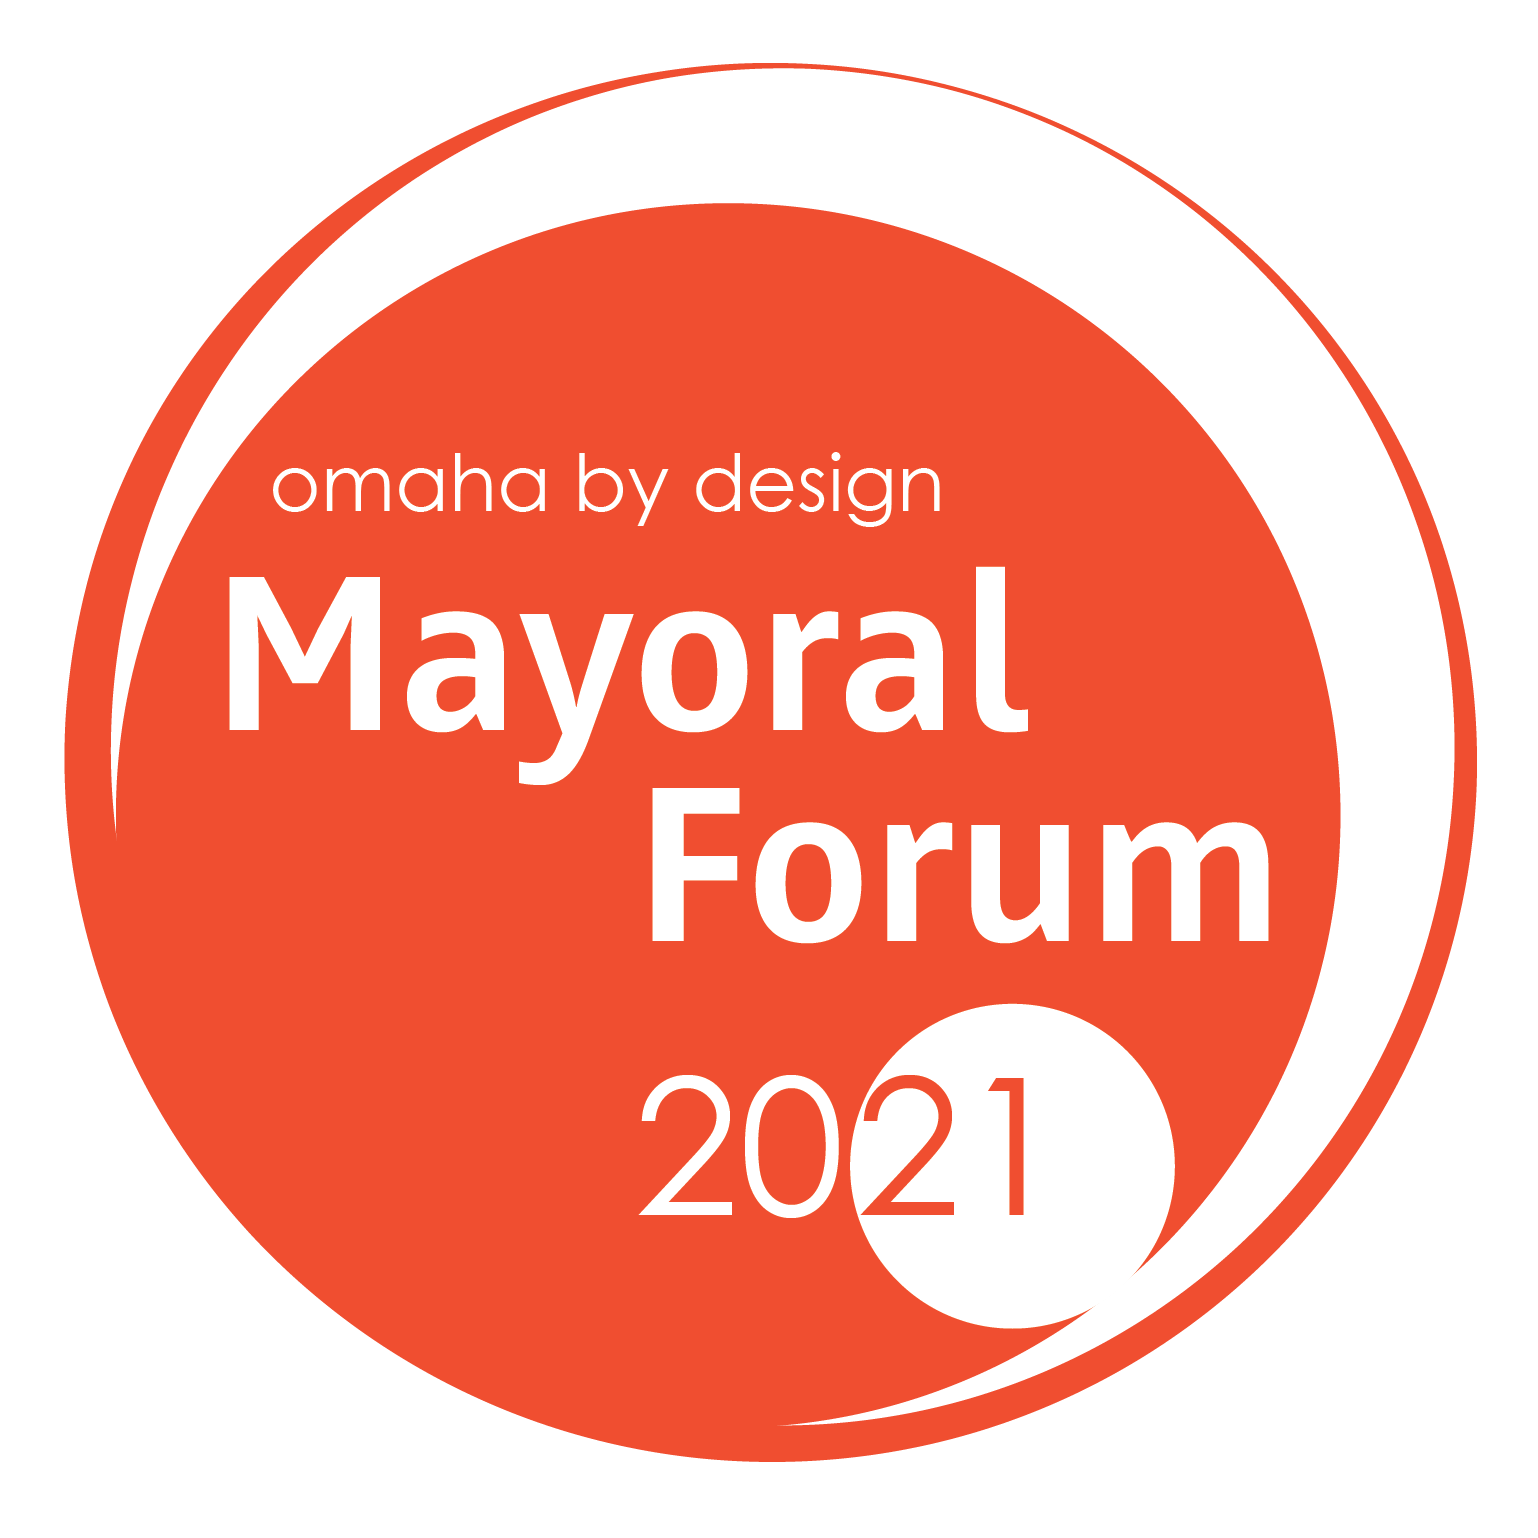 2021 Omaha by Design Mayoral Forum